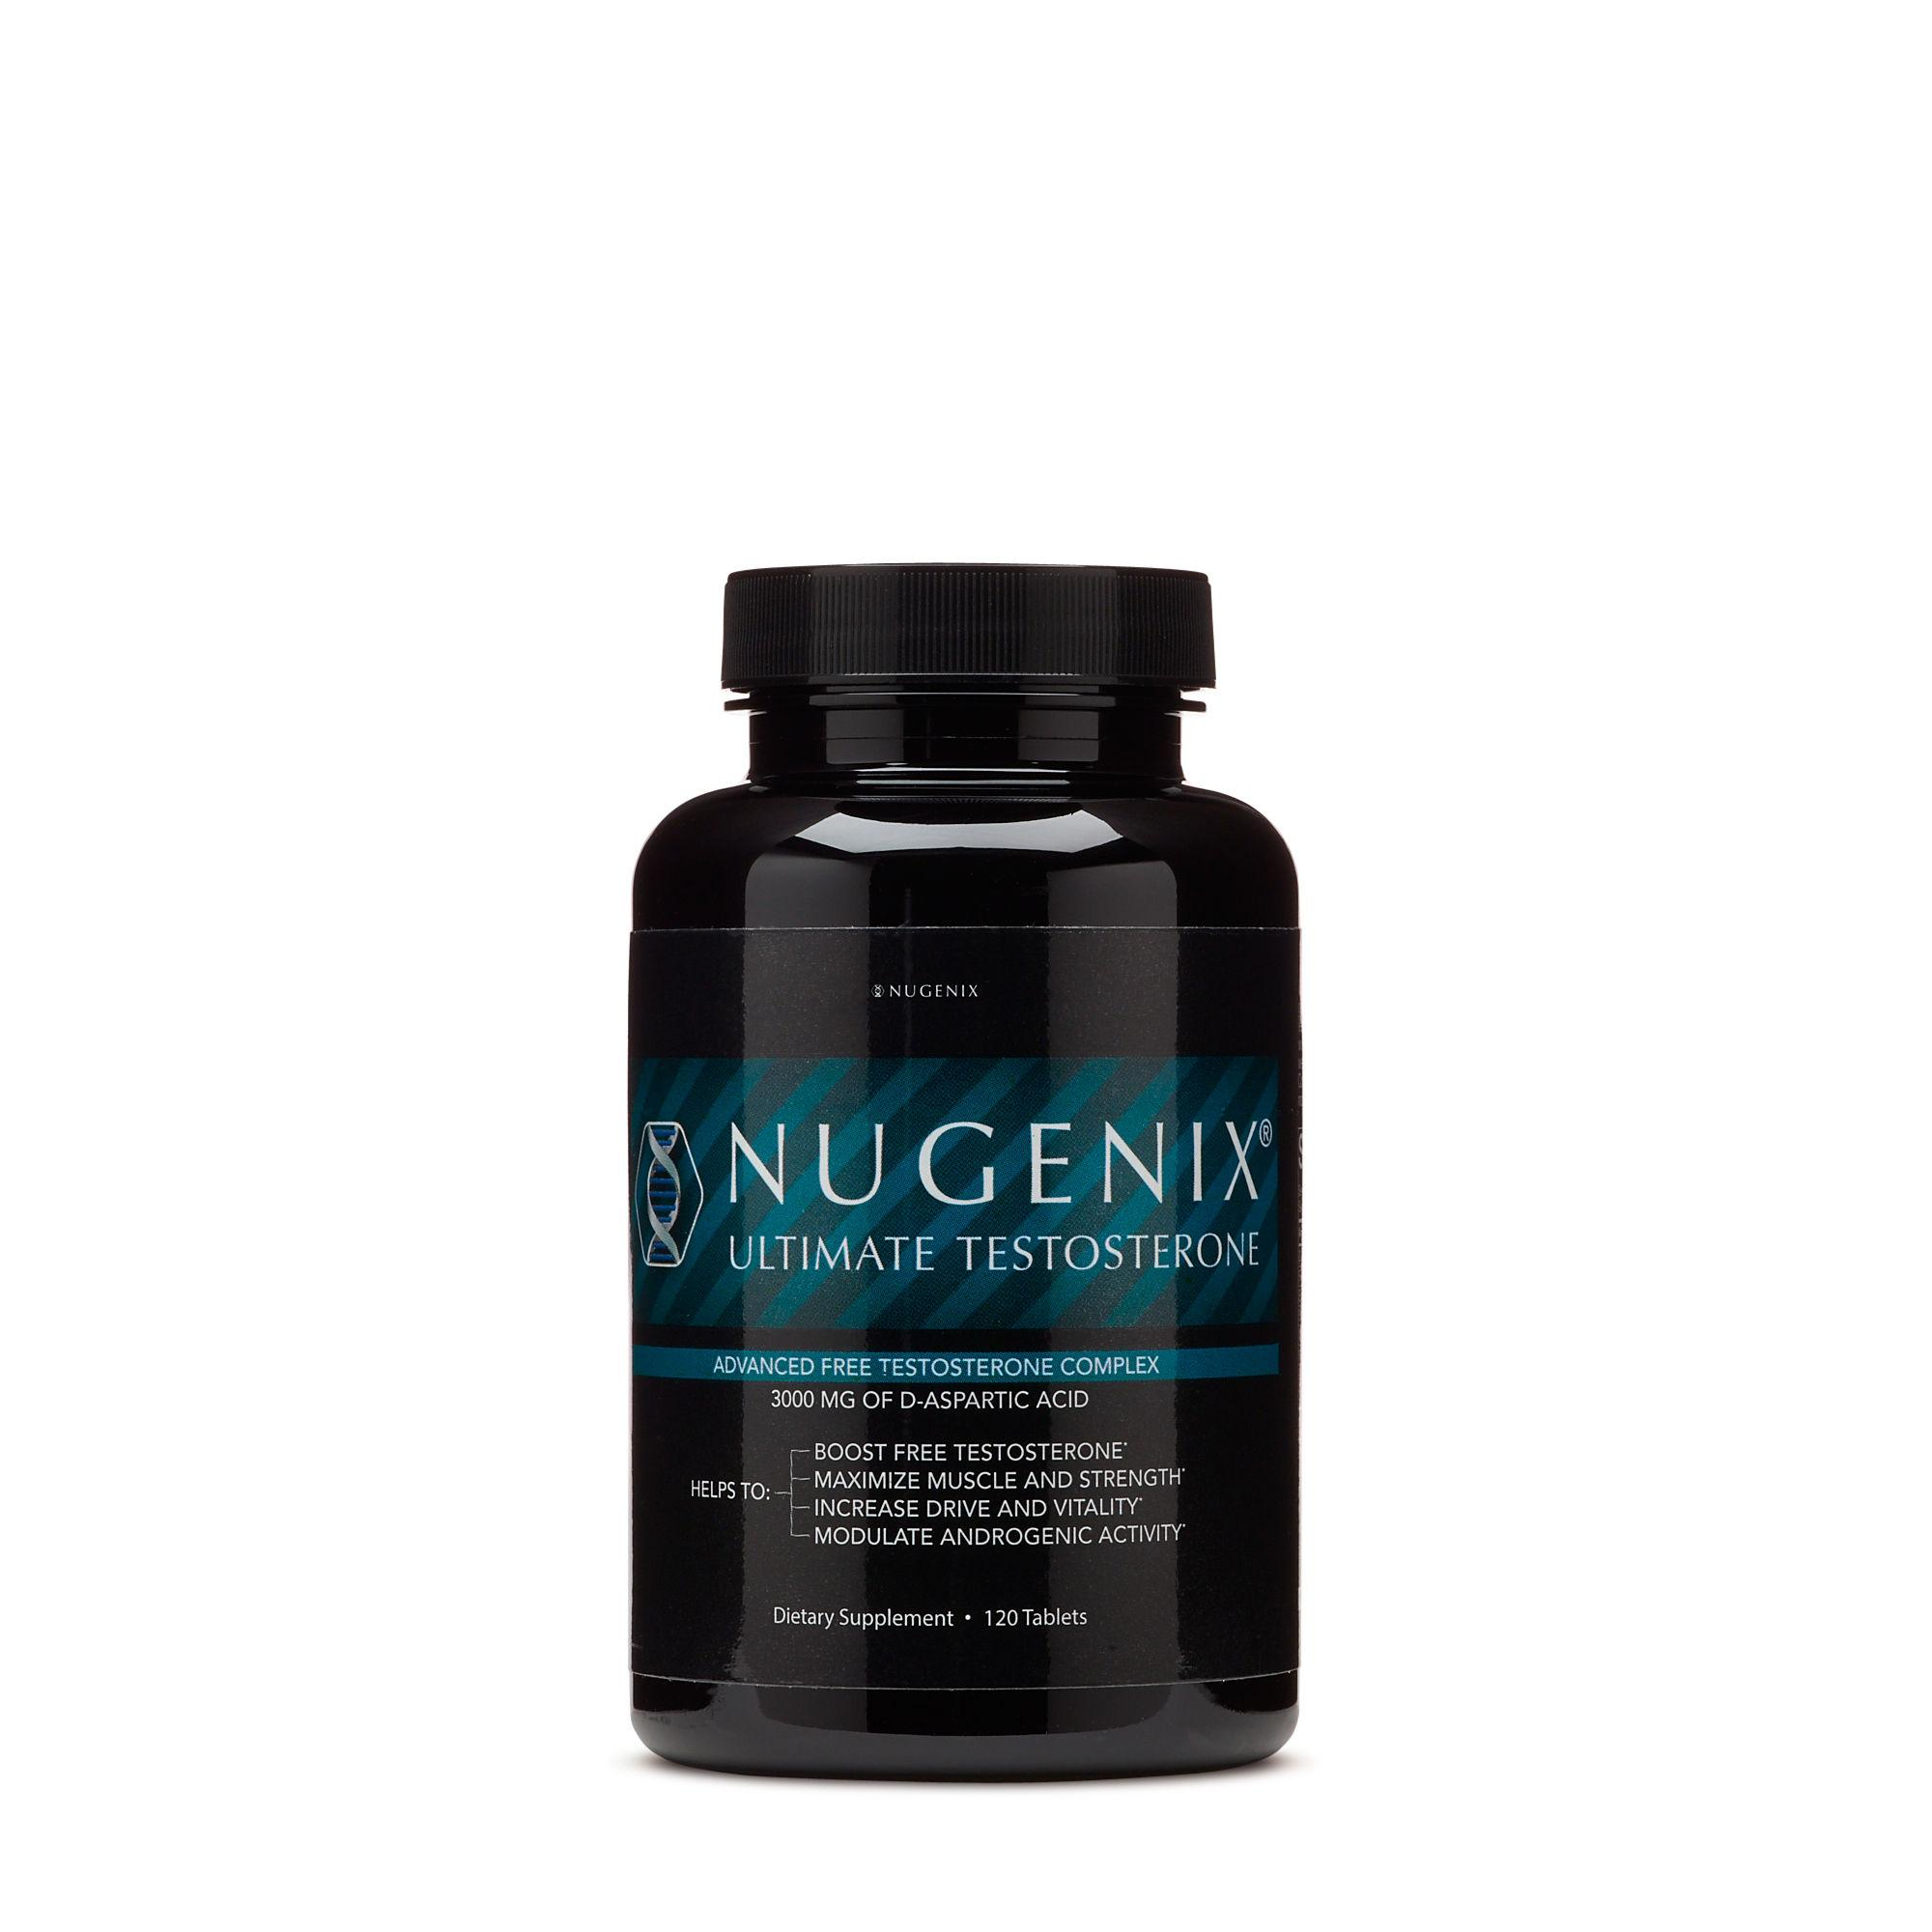 Nugenix Ultimate Testosterone By Gnc.